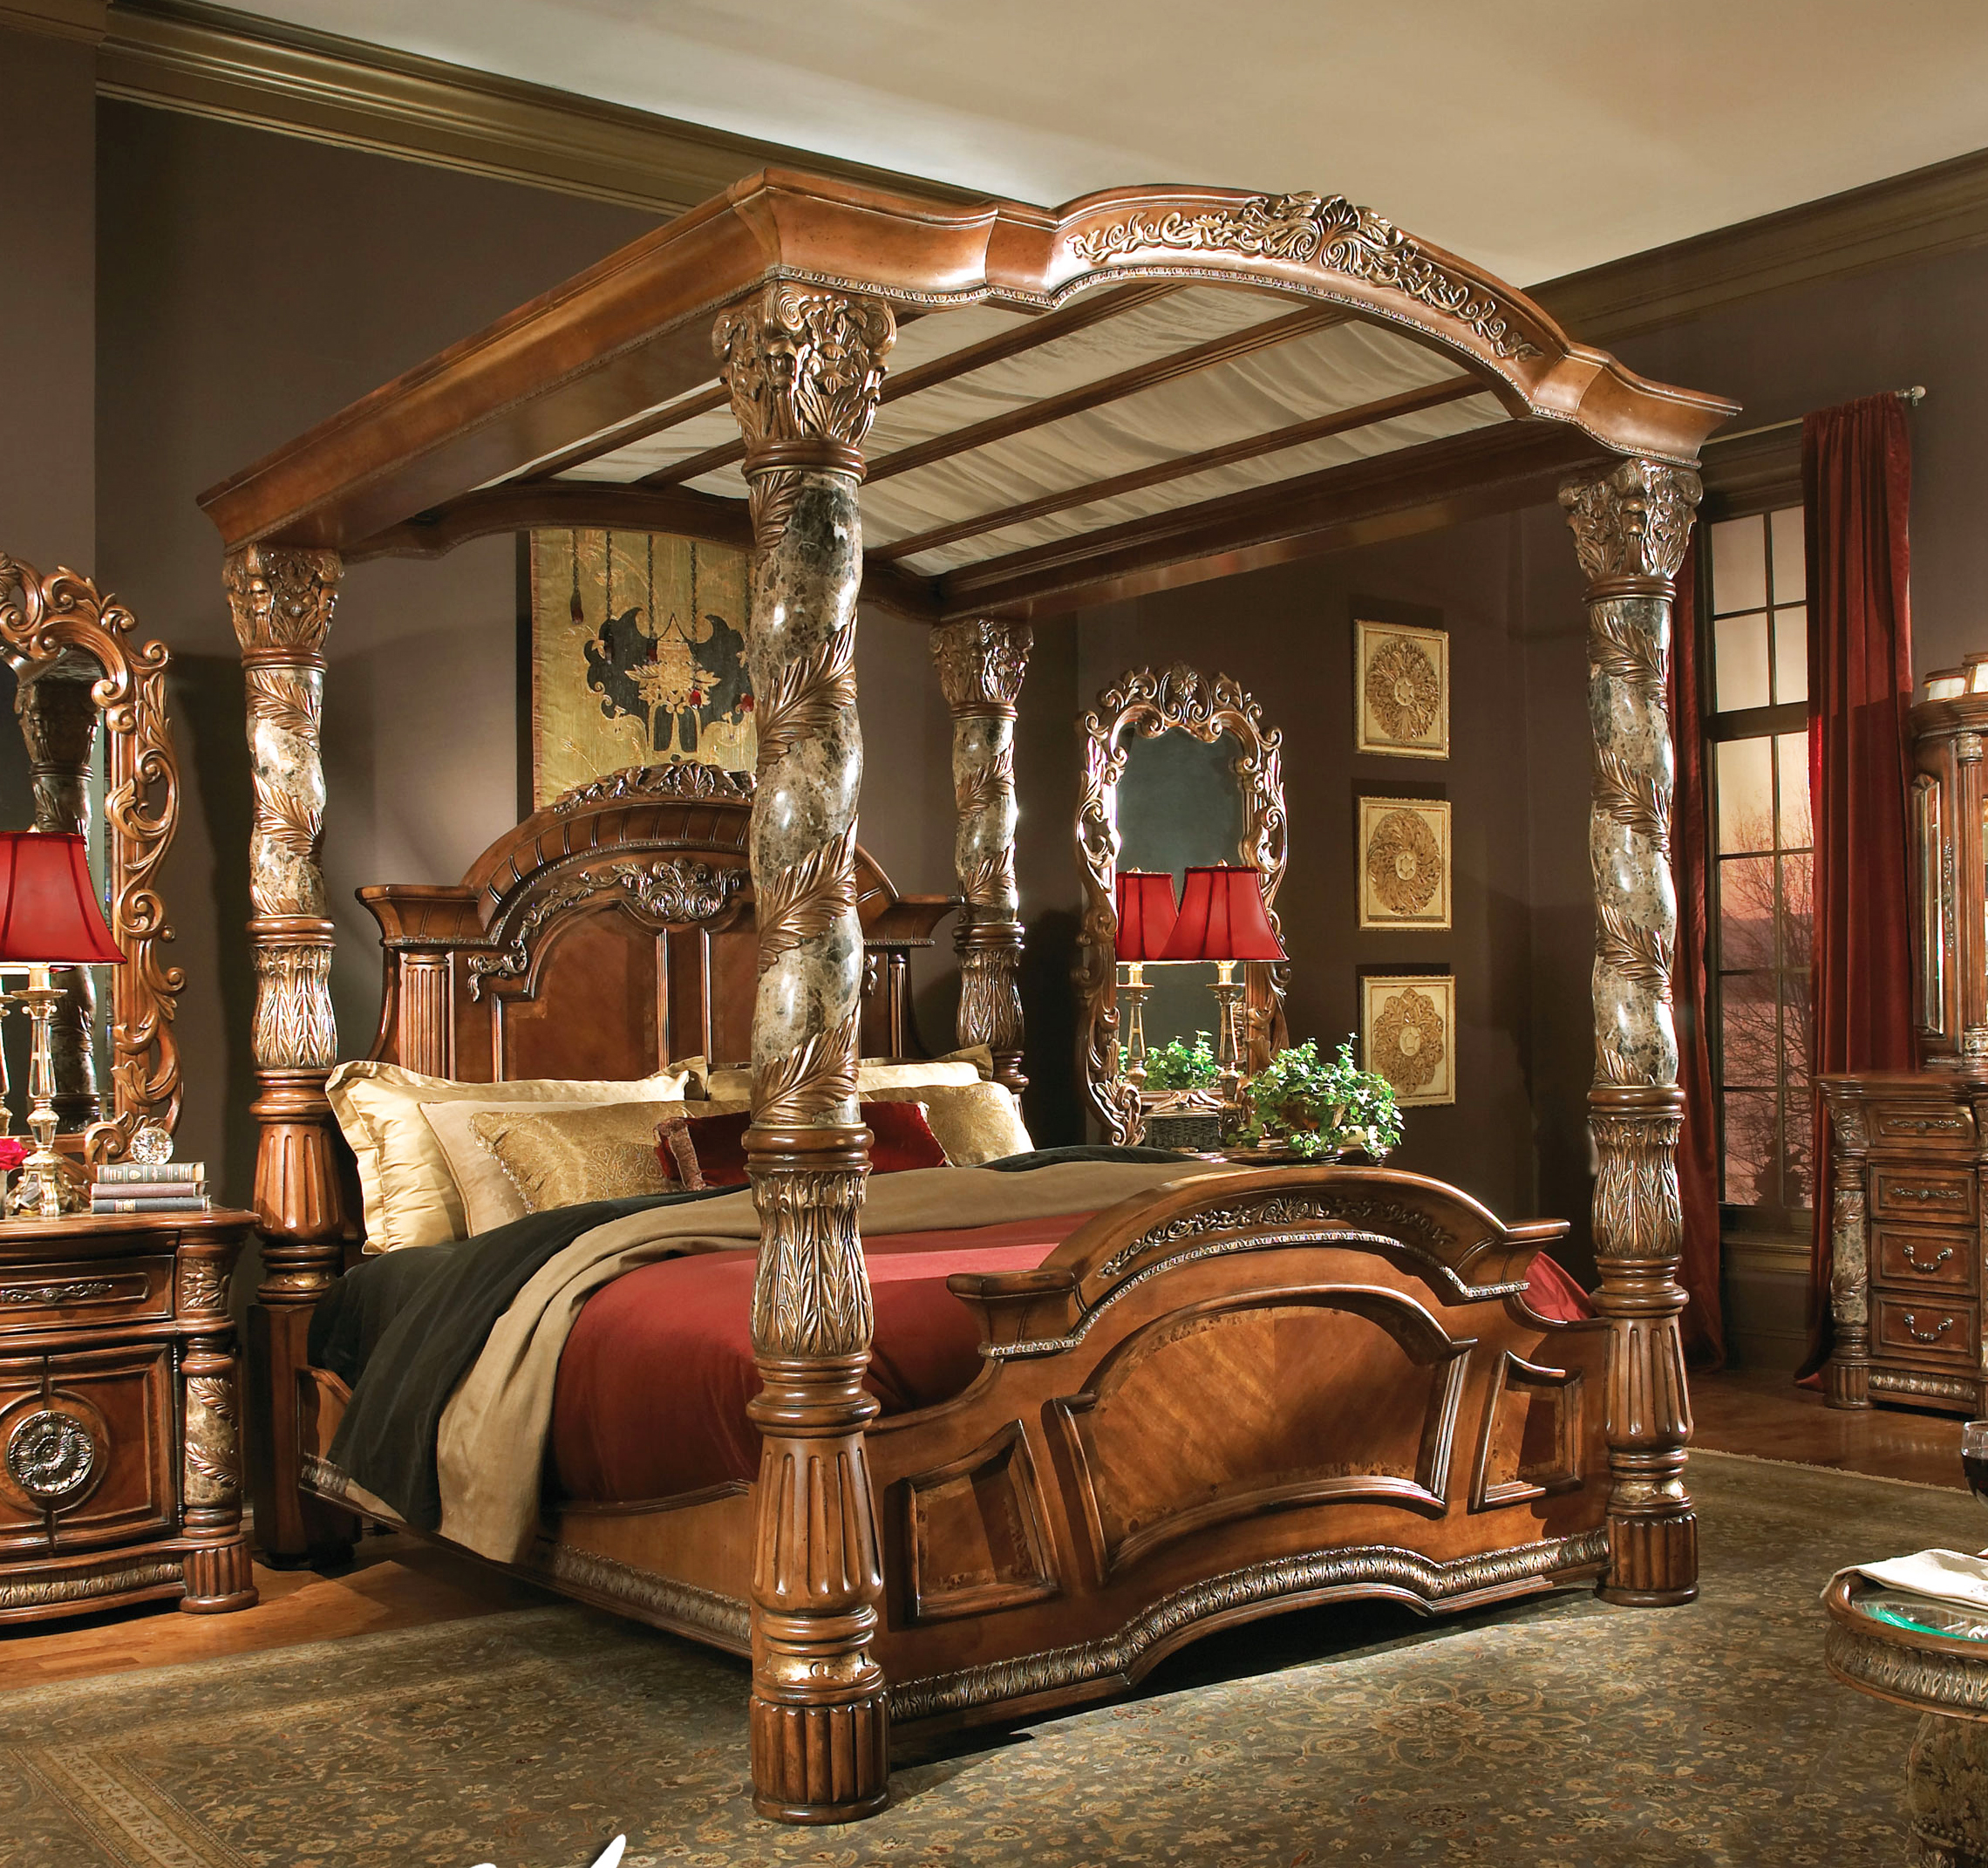 Gorgeous Bedroom Fill with King Size Canopy Bed: Mesmerizing King Size Canopy Bed With Red Color